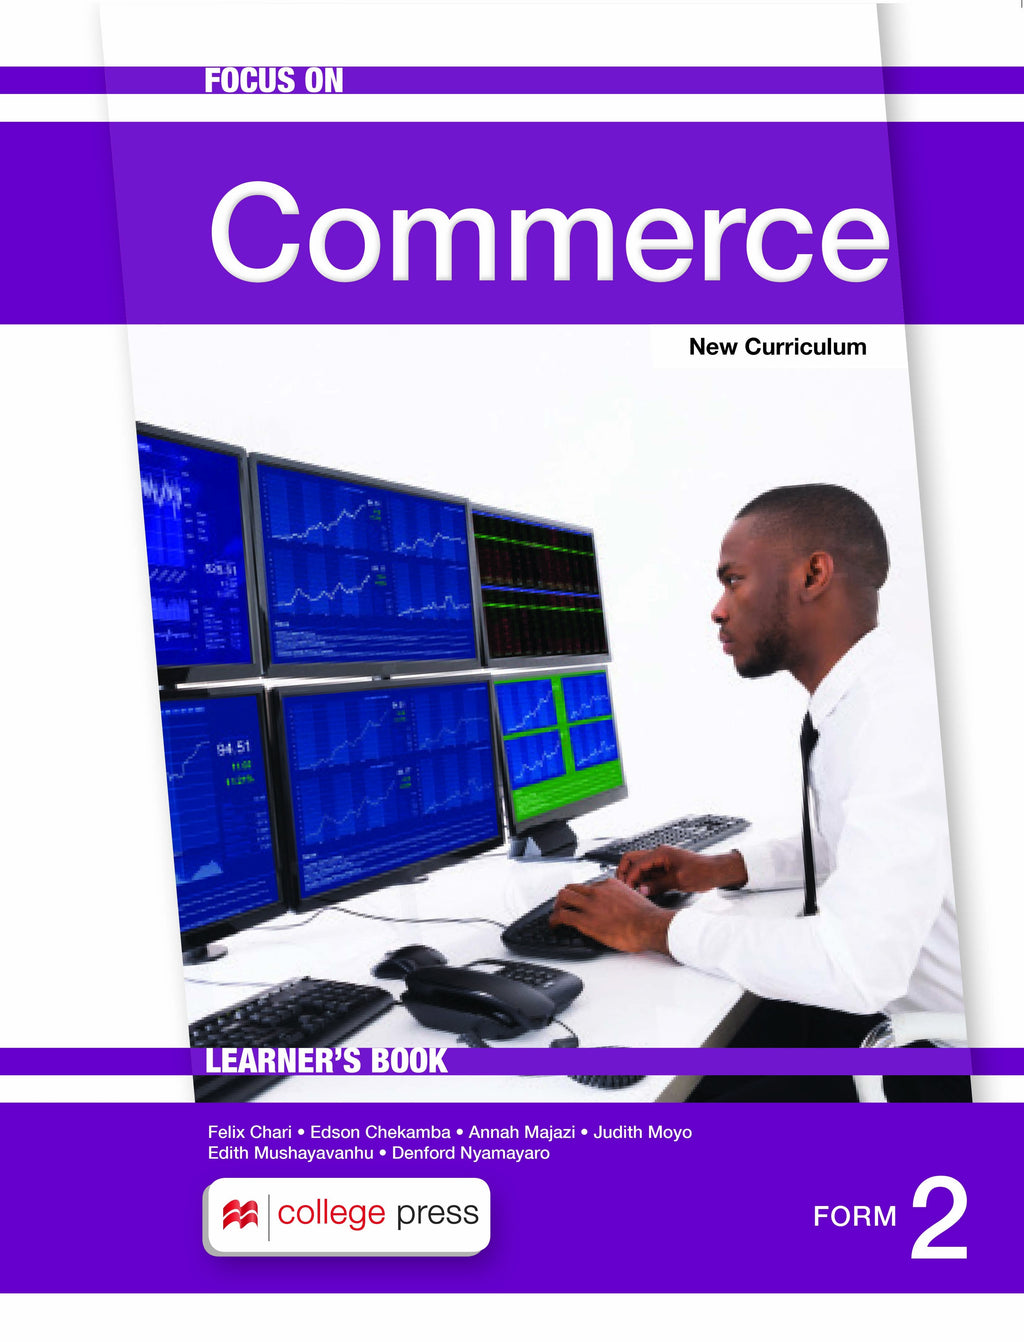 Focus on Commerce Form 2